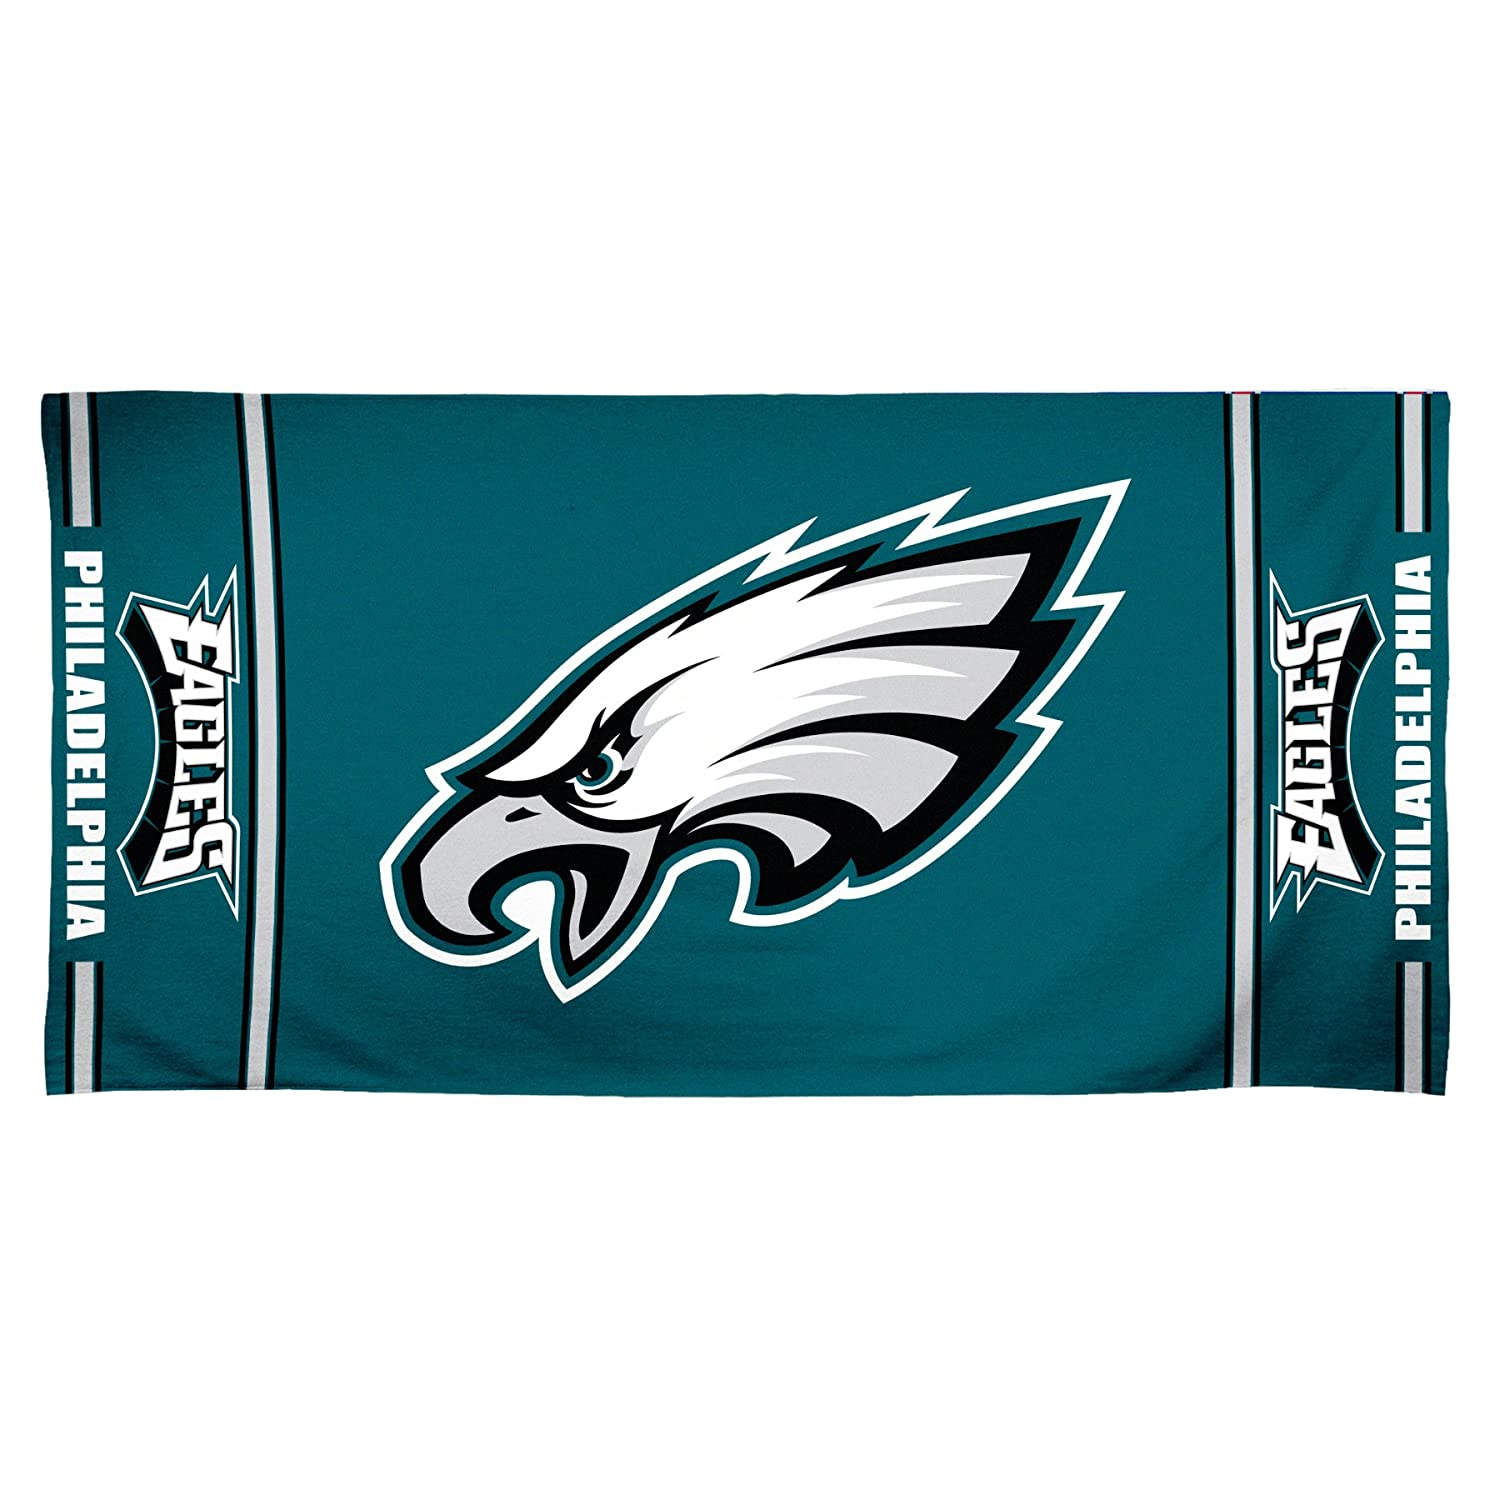 NFL Philadelphia Eagles 30 by 60 Fiber Reactive Beach Towel комплект полутораспальный amore mio bz hague